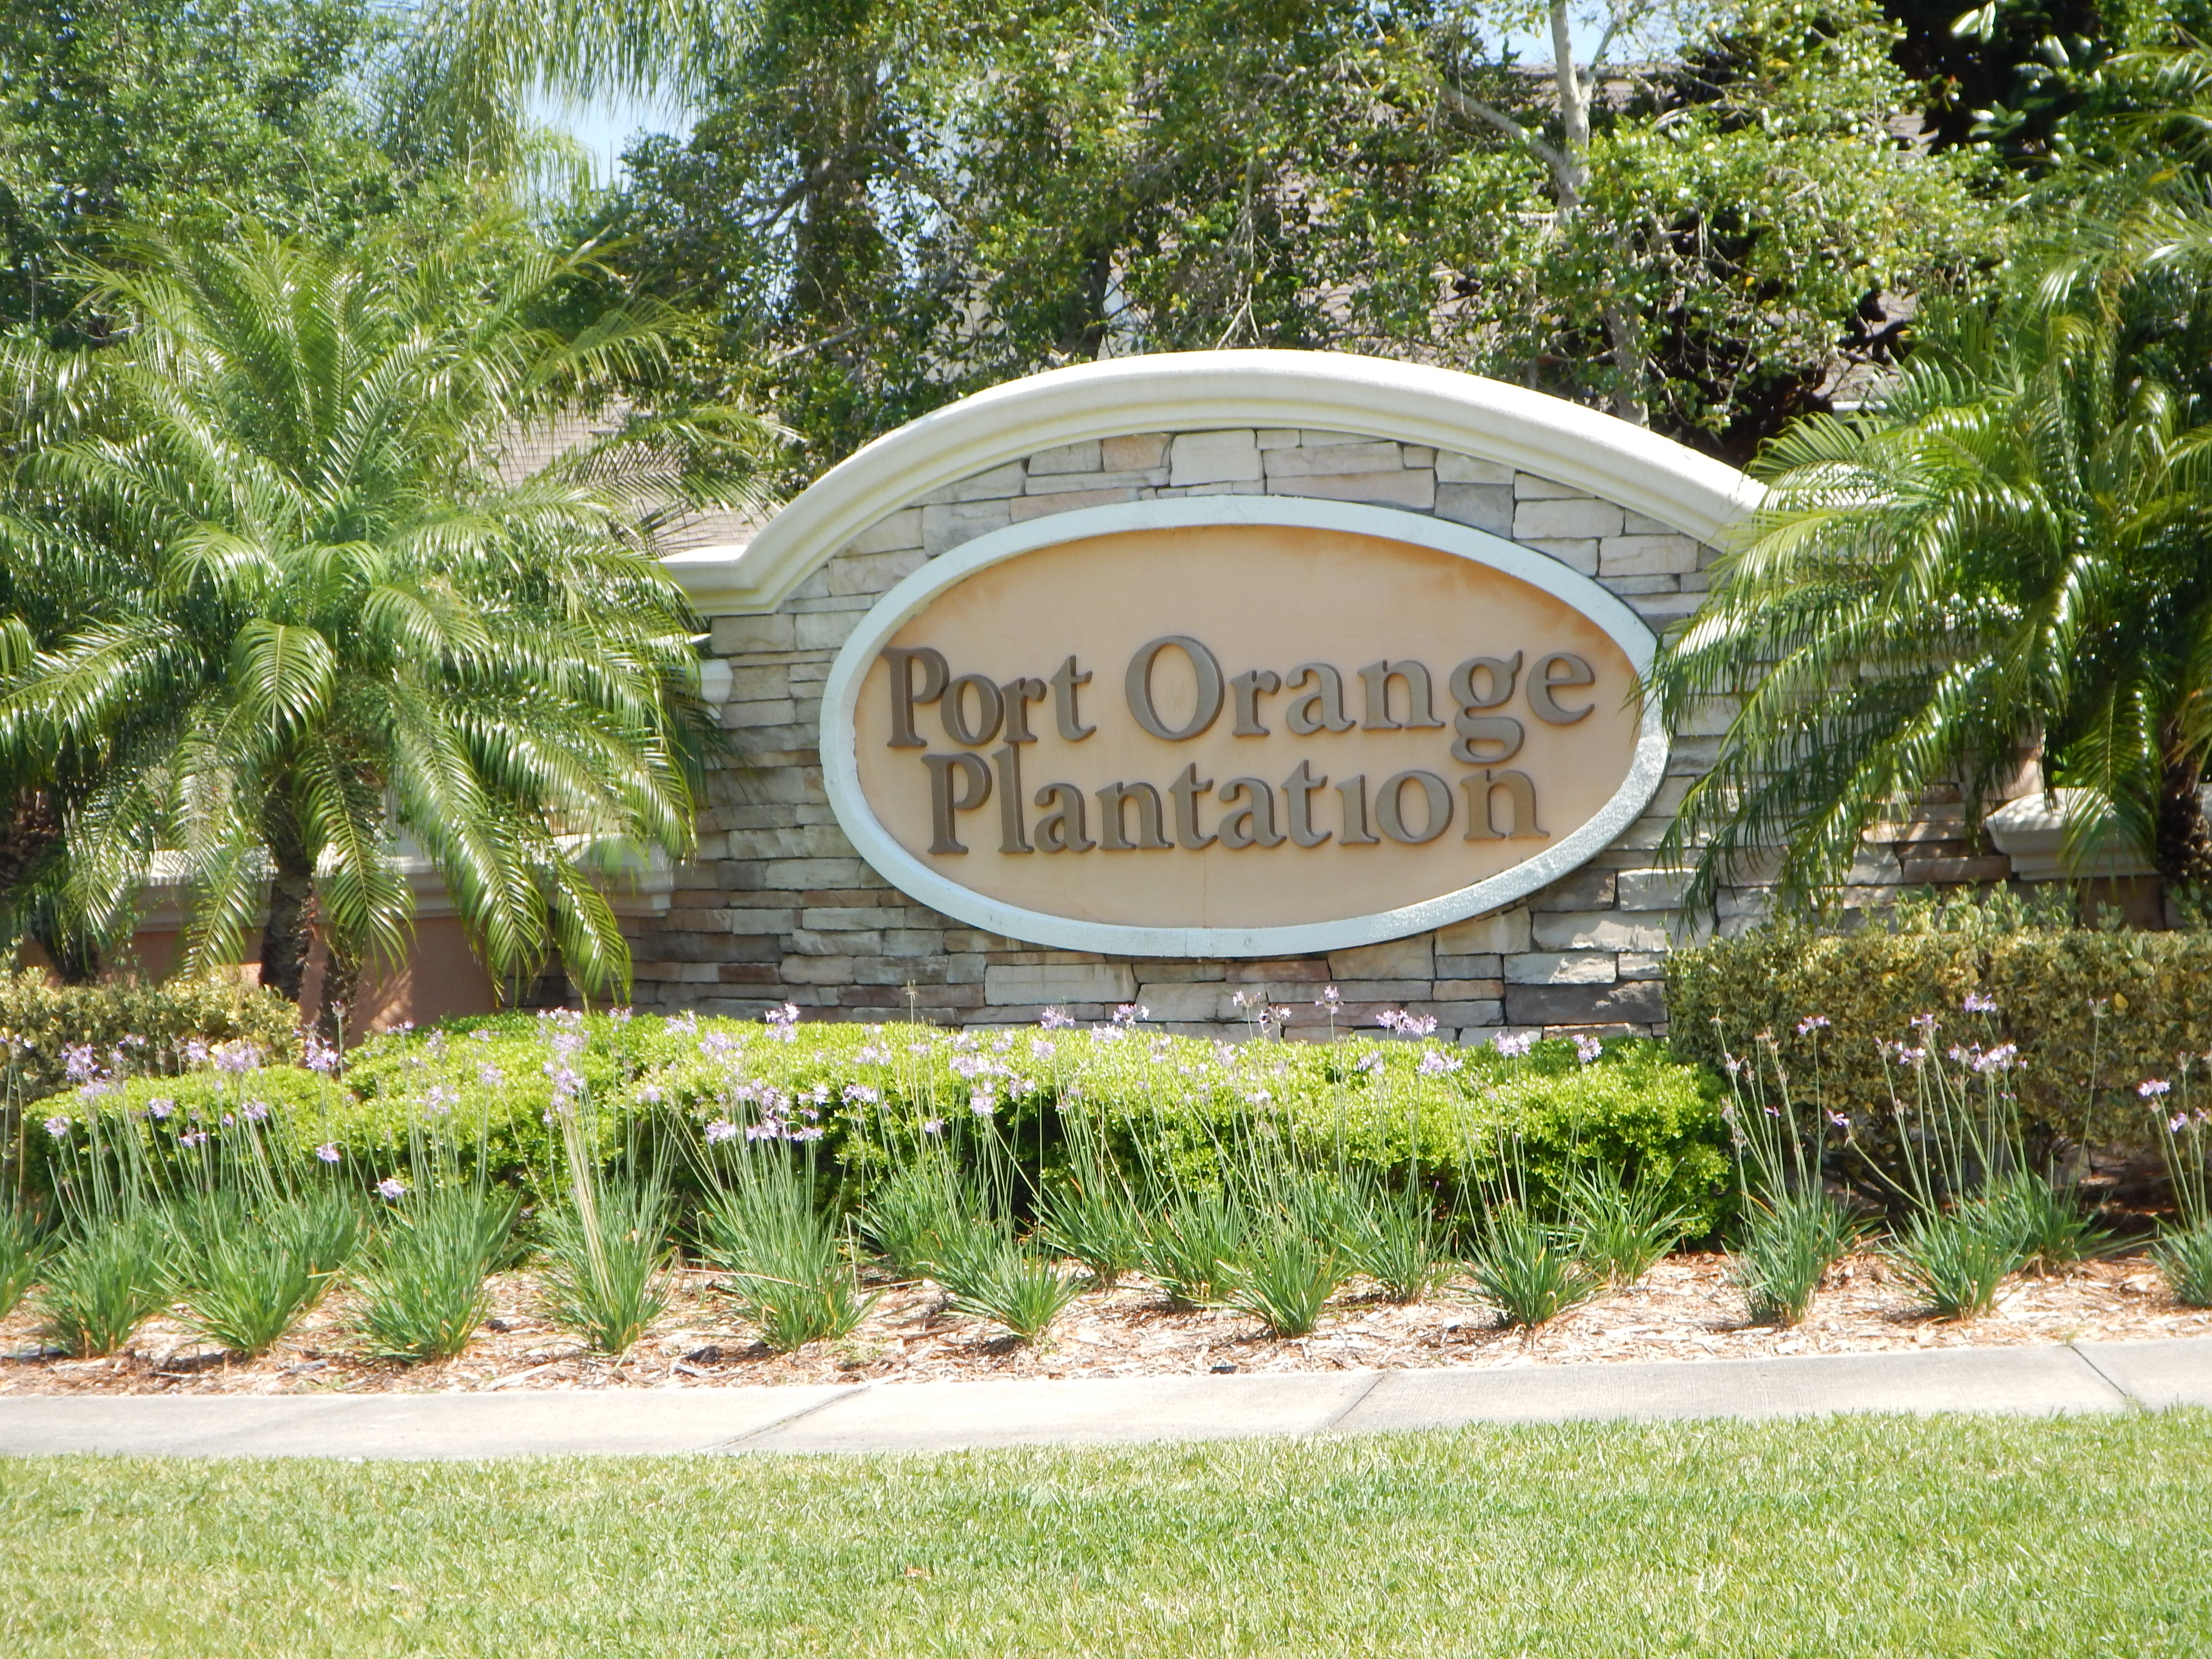 Port Orange Plantation